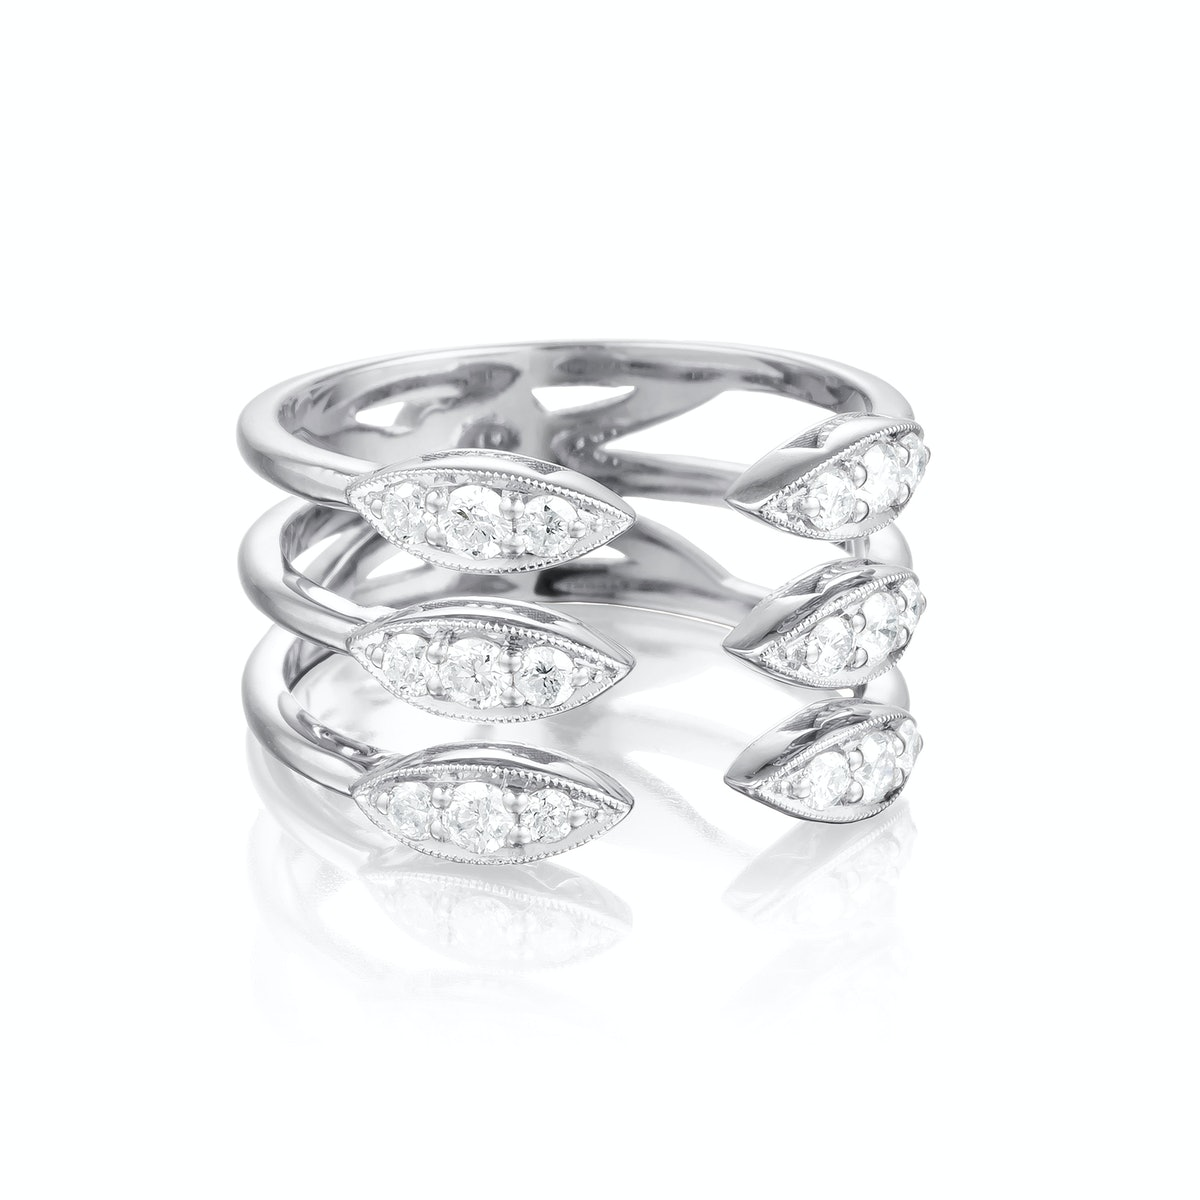 Tacori_The-Ivy-Lane-Stacked-Marquise-Ring_$1290-1